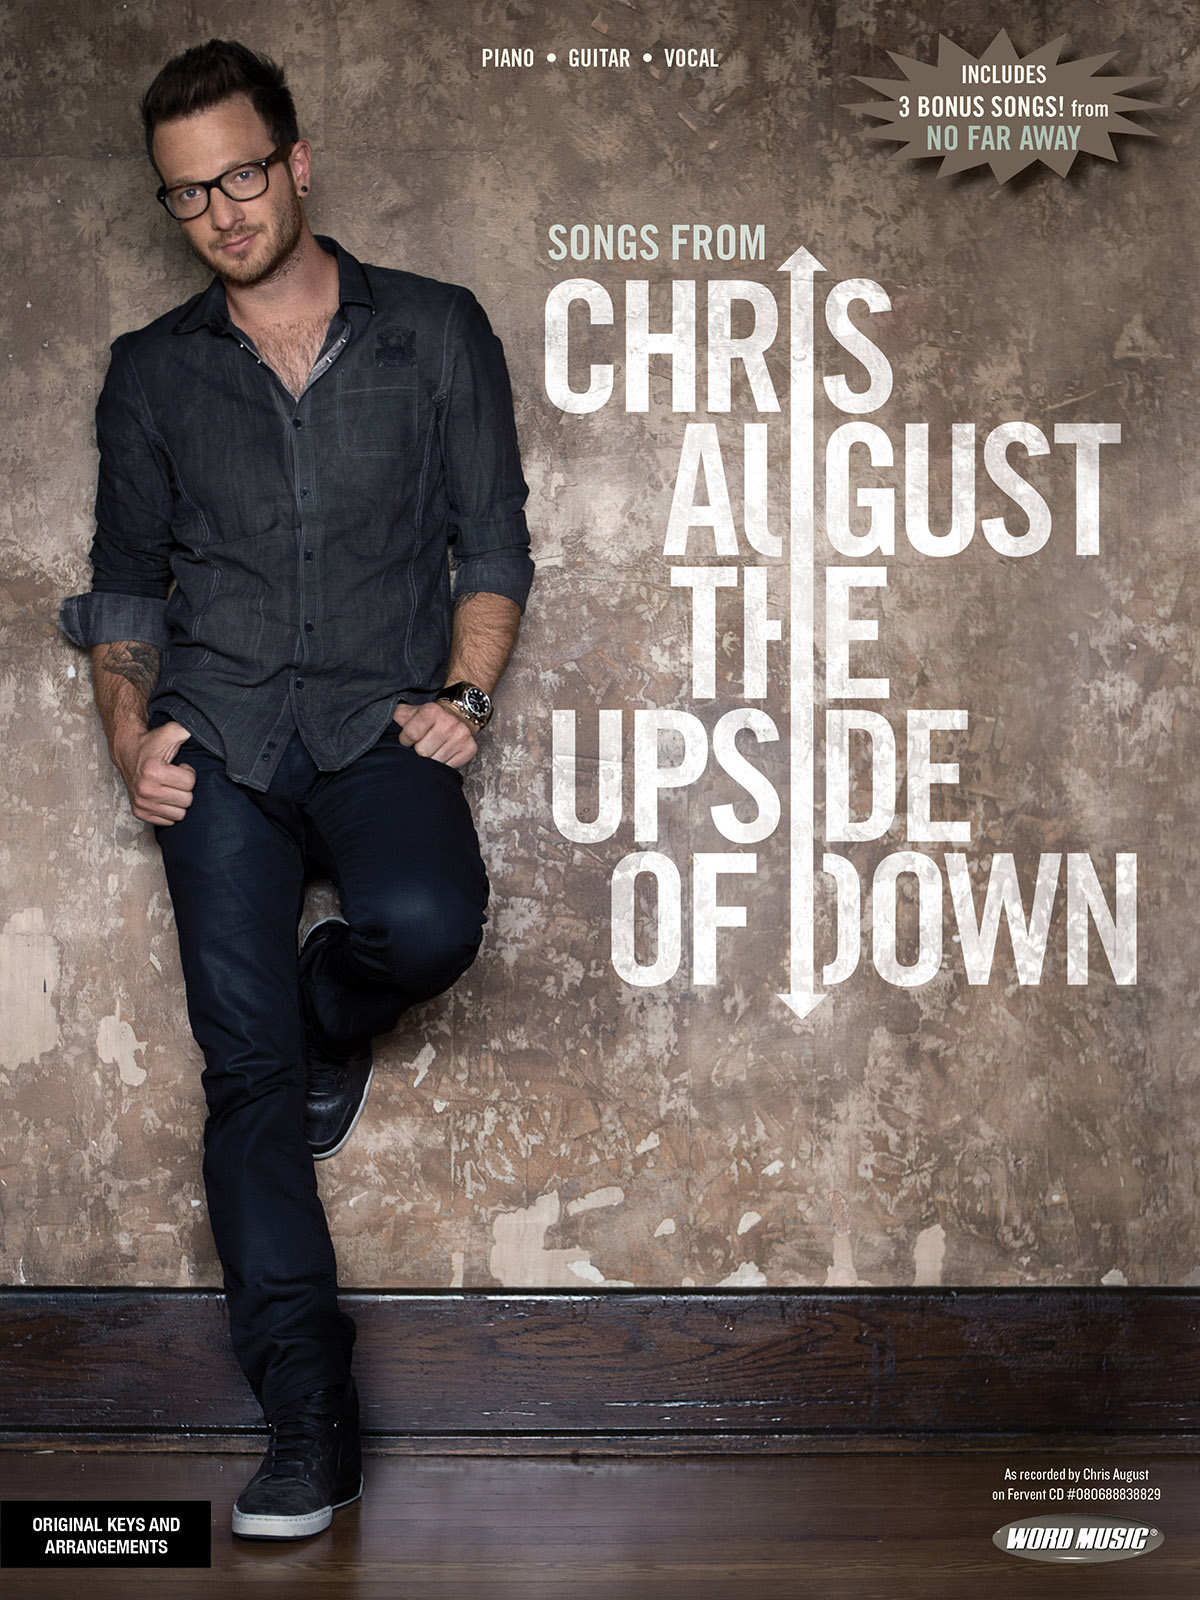 Songs From Chris August - The Upside Of Down